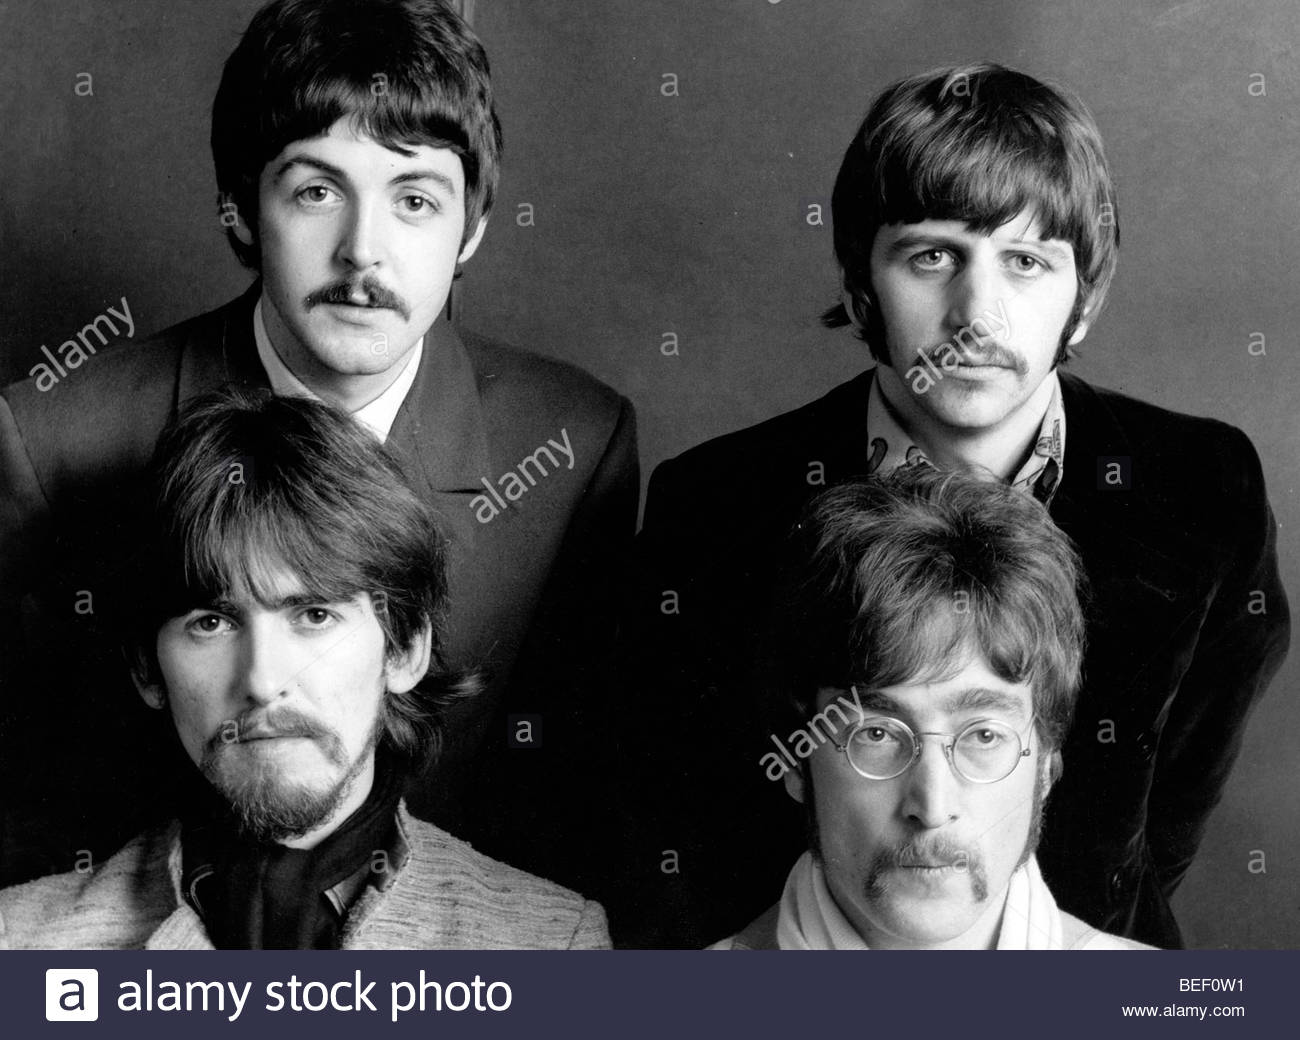 Portrait of the rock band The Beatles - Stock Image